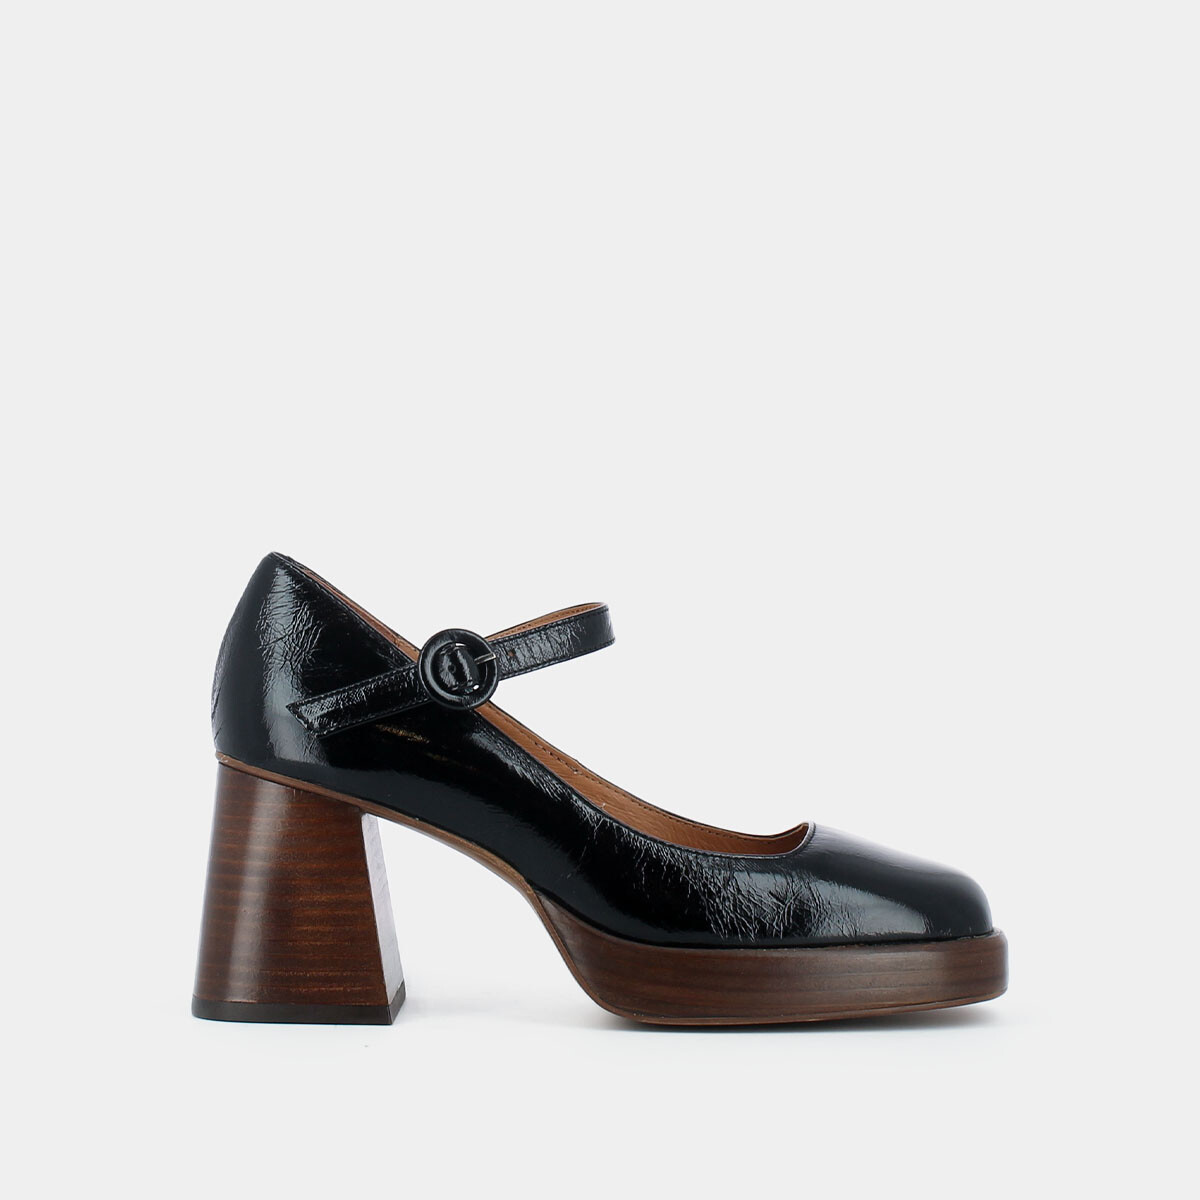 Heeled Mary Janes with platform in black patent leather